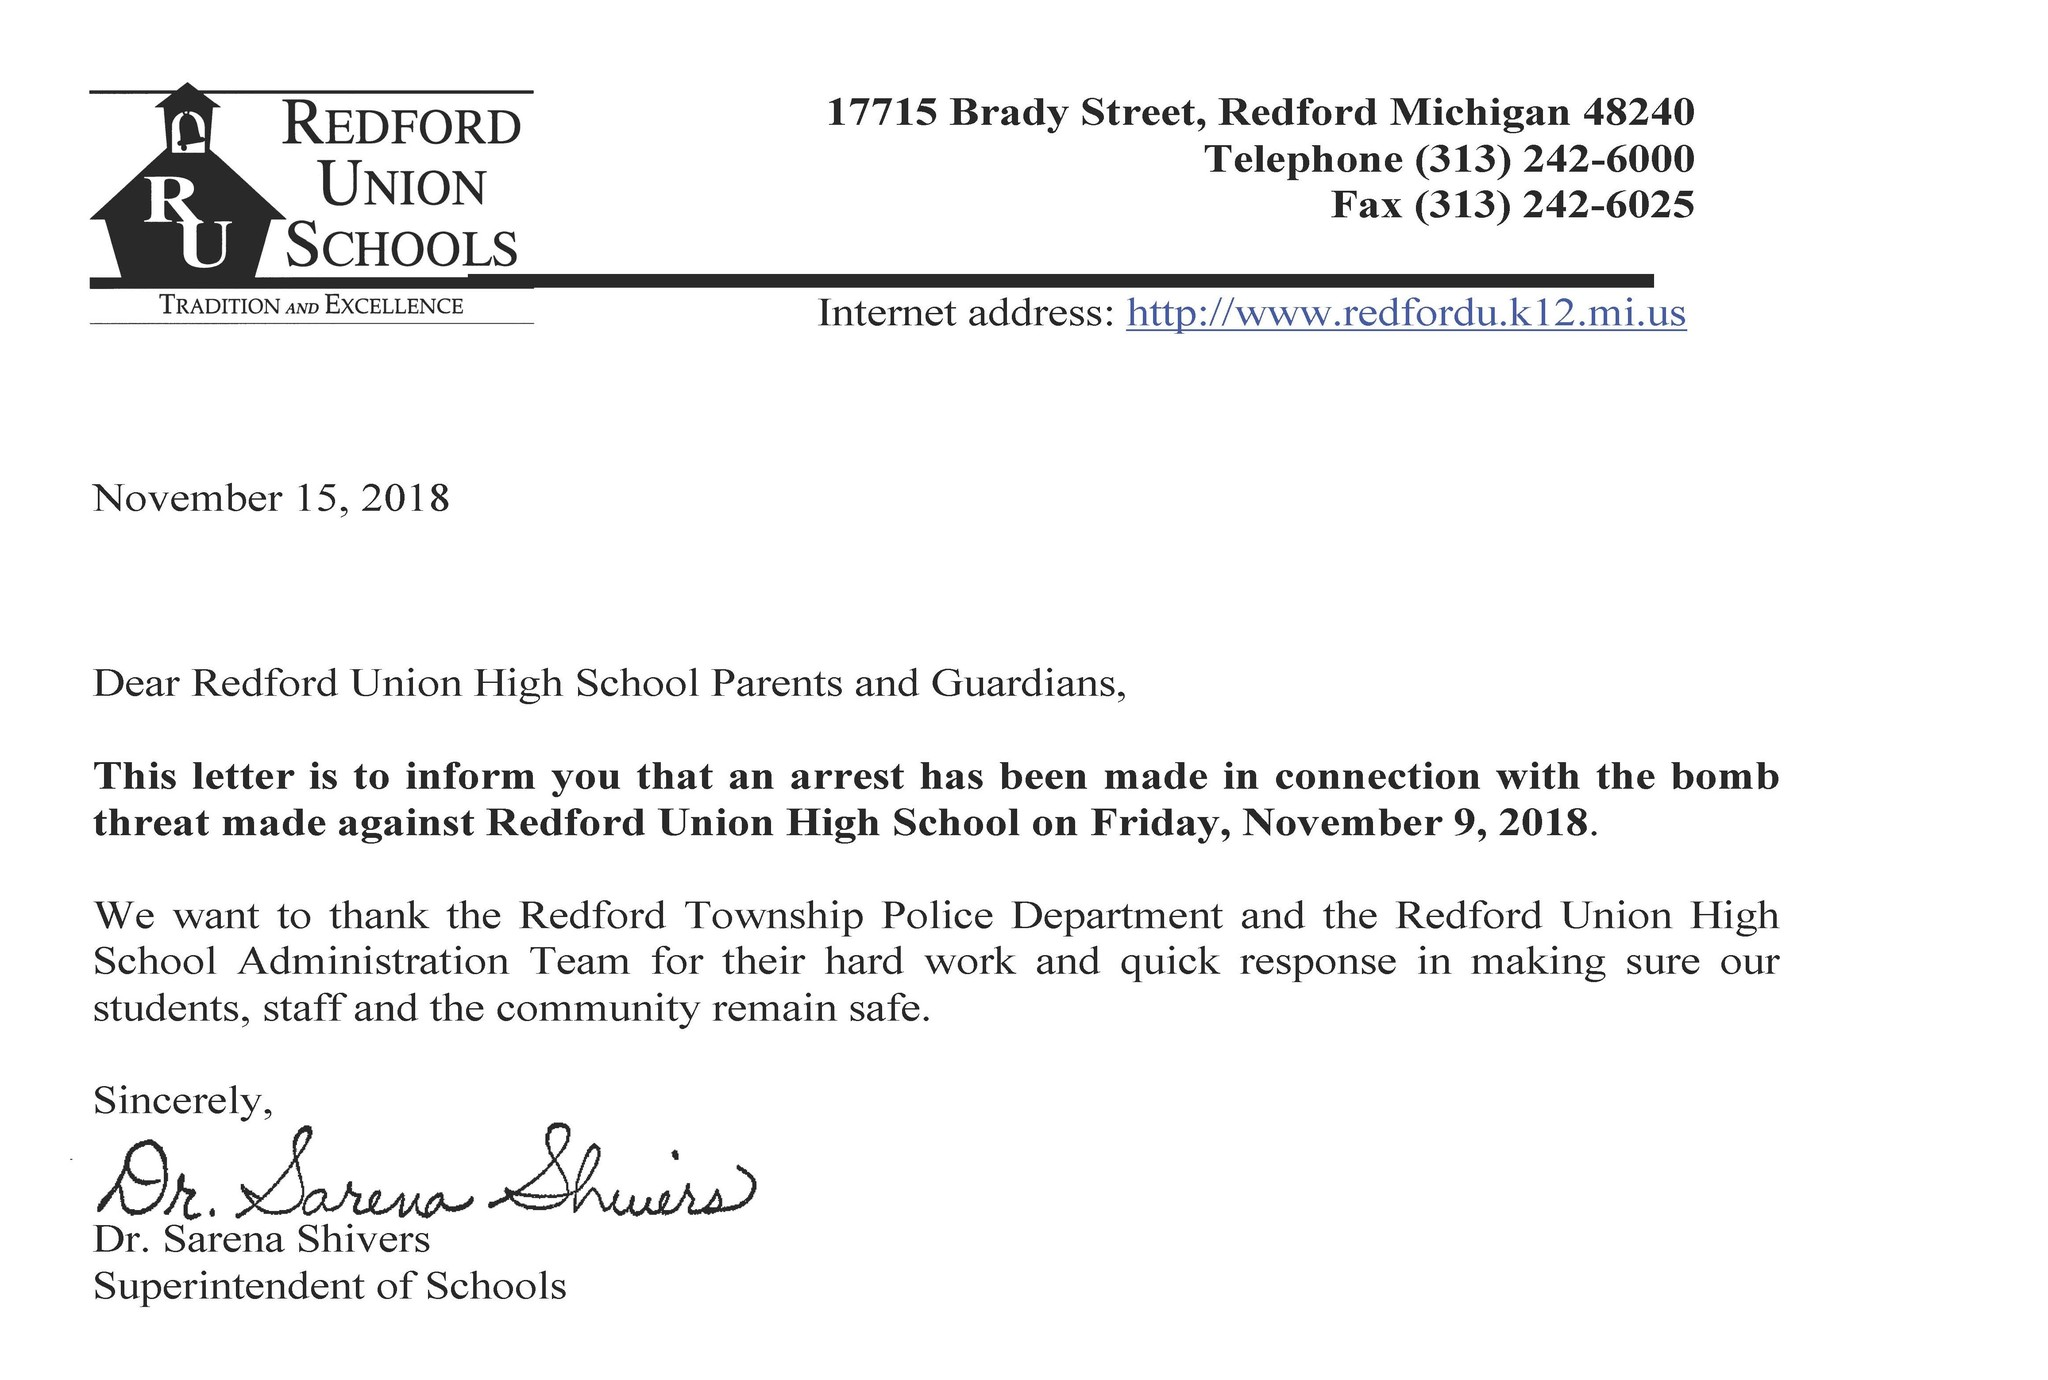 November 15, 2018, Dear Redford Union High School Parents and Guardians.  This letter is to inform you that an arrest has been made in connection with the bomb threat made against Redford Union High School on Friday, November 9, 2018. We want to thank the Redford Township Police Department and the Redford Union High School Administration Team for their hard work and quick response in making sure our students, staff and the community remain safe.  Sincerely, Dr. Sarena Shivers, Superintendent of Schools